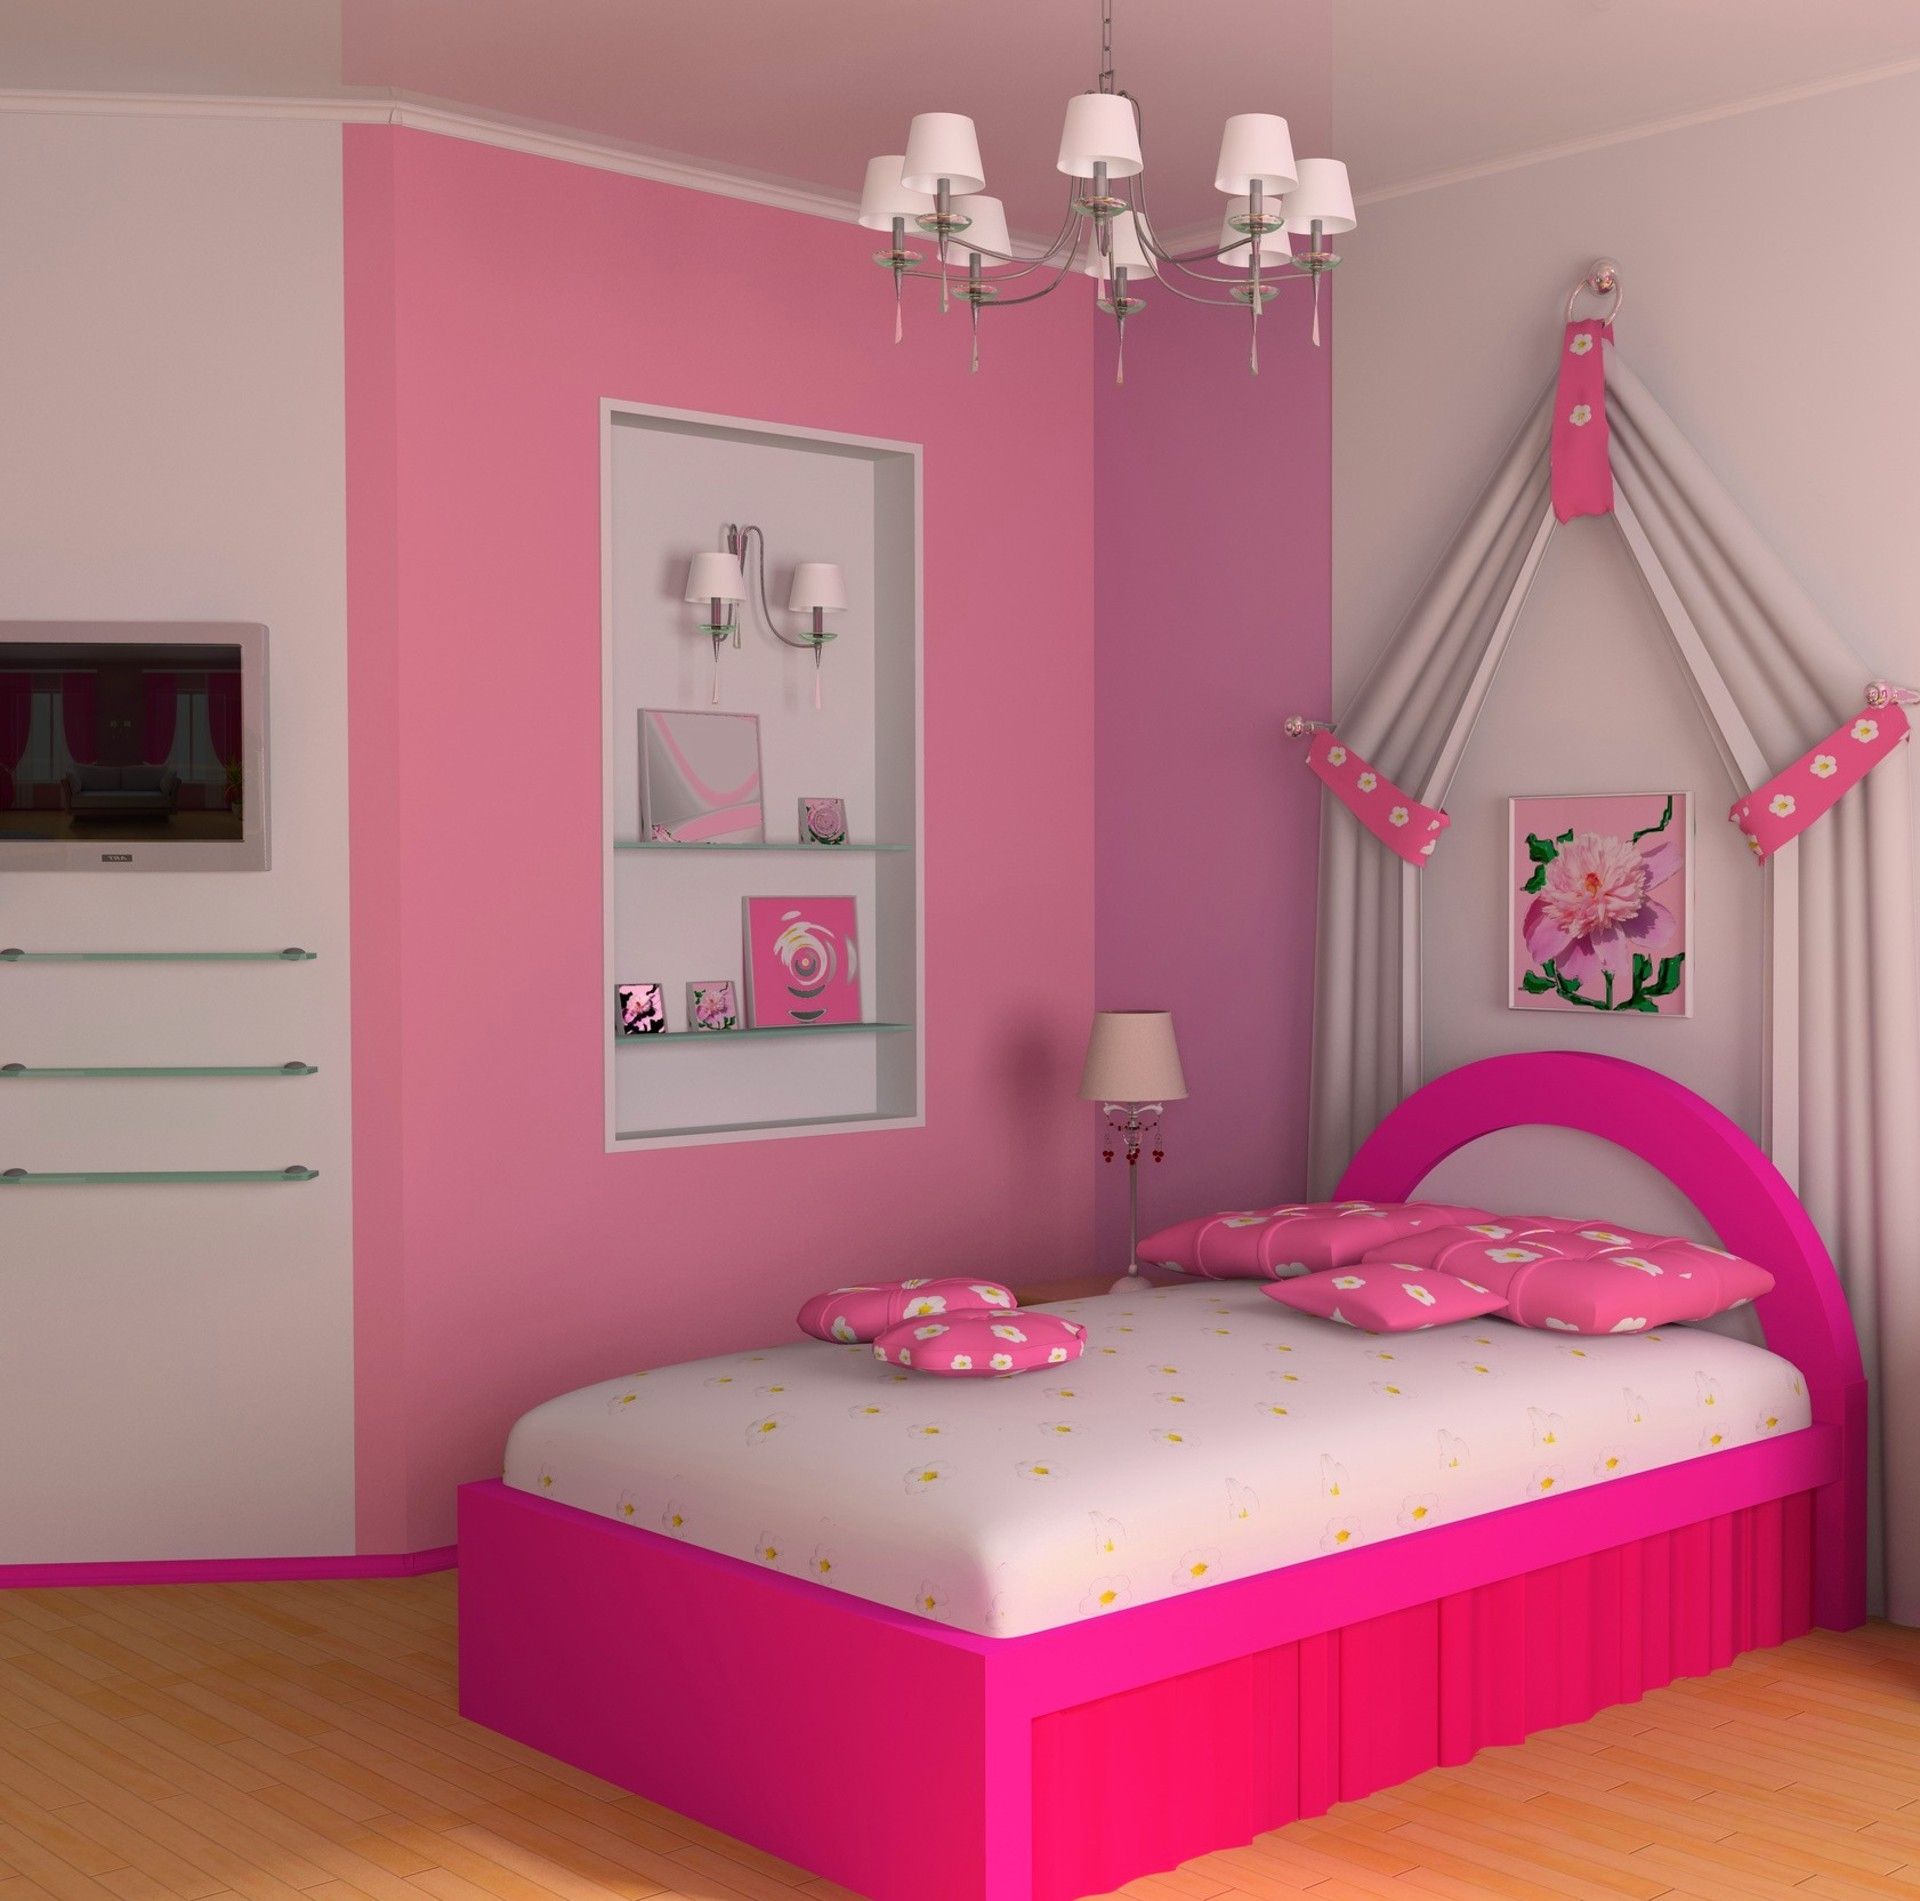 Bedroom Ideas For Girls Bed Ideas And Kids Bedroom: Simple Pikn Barbie Themed Teen Girl Bedroom Design